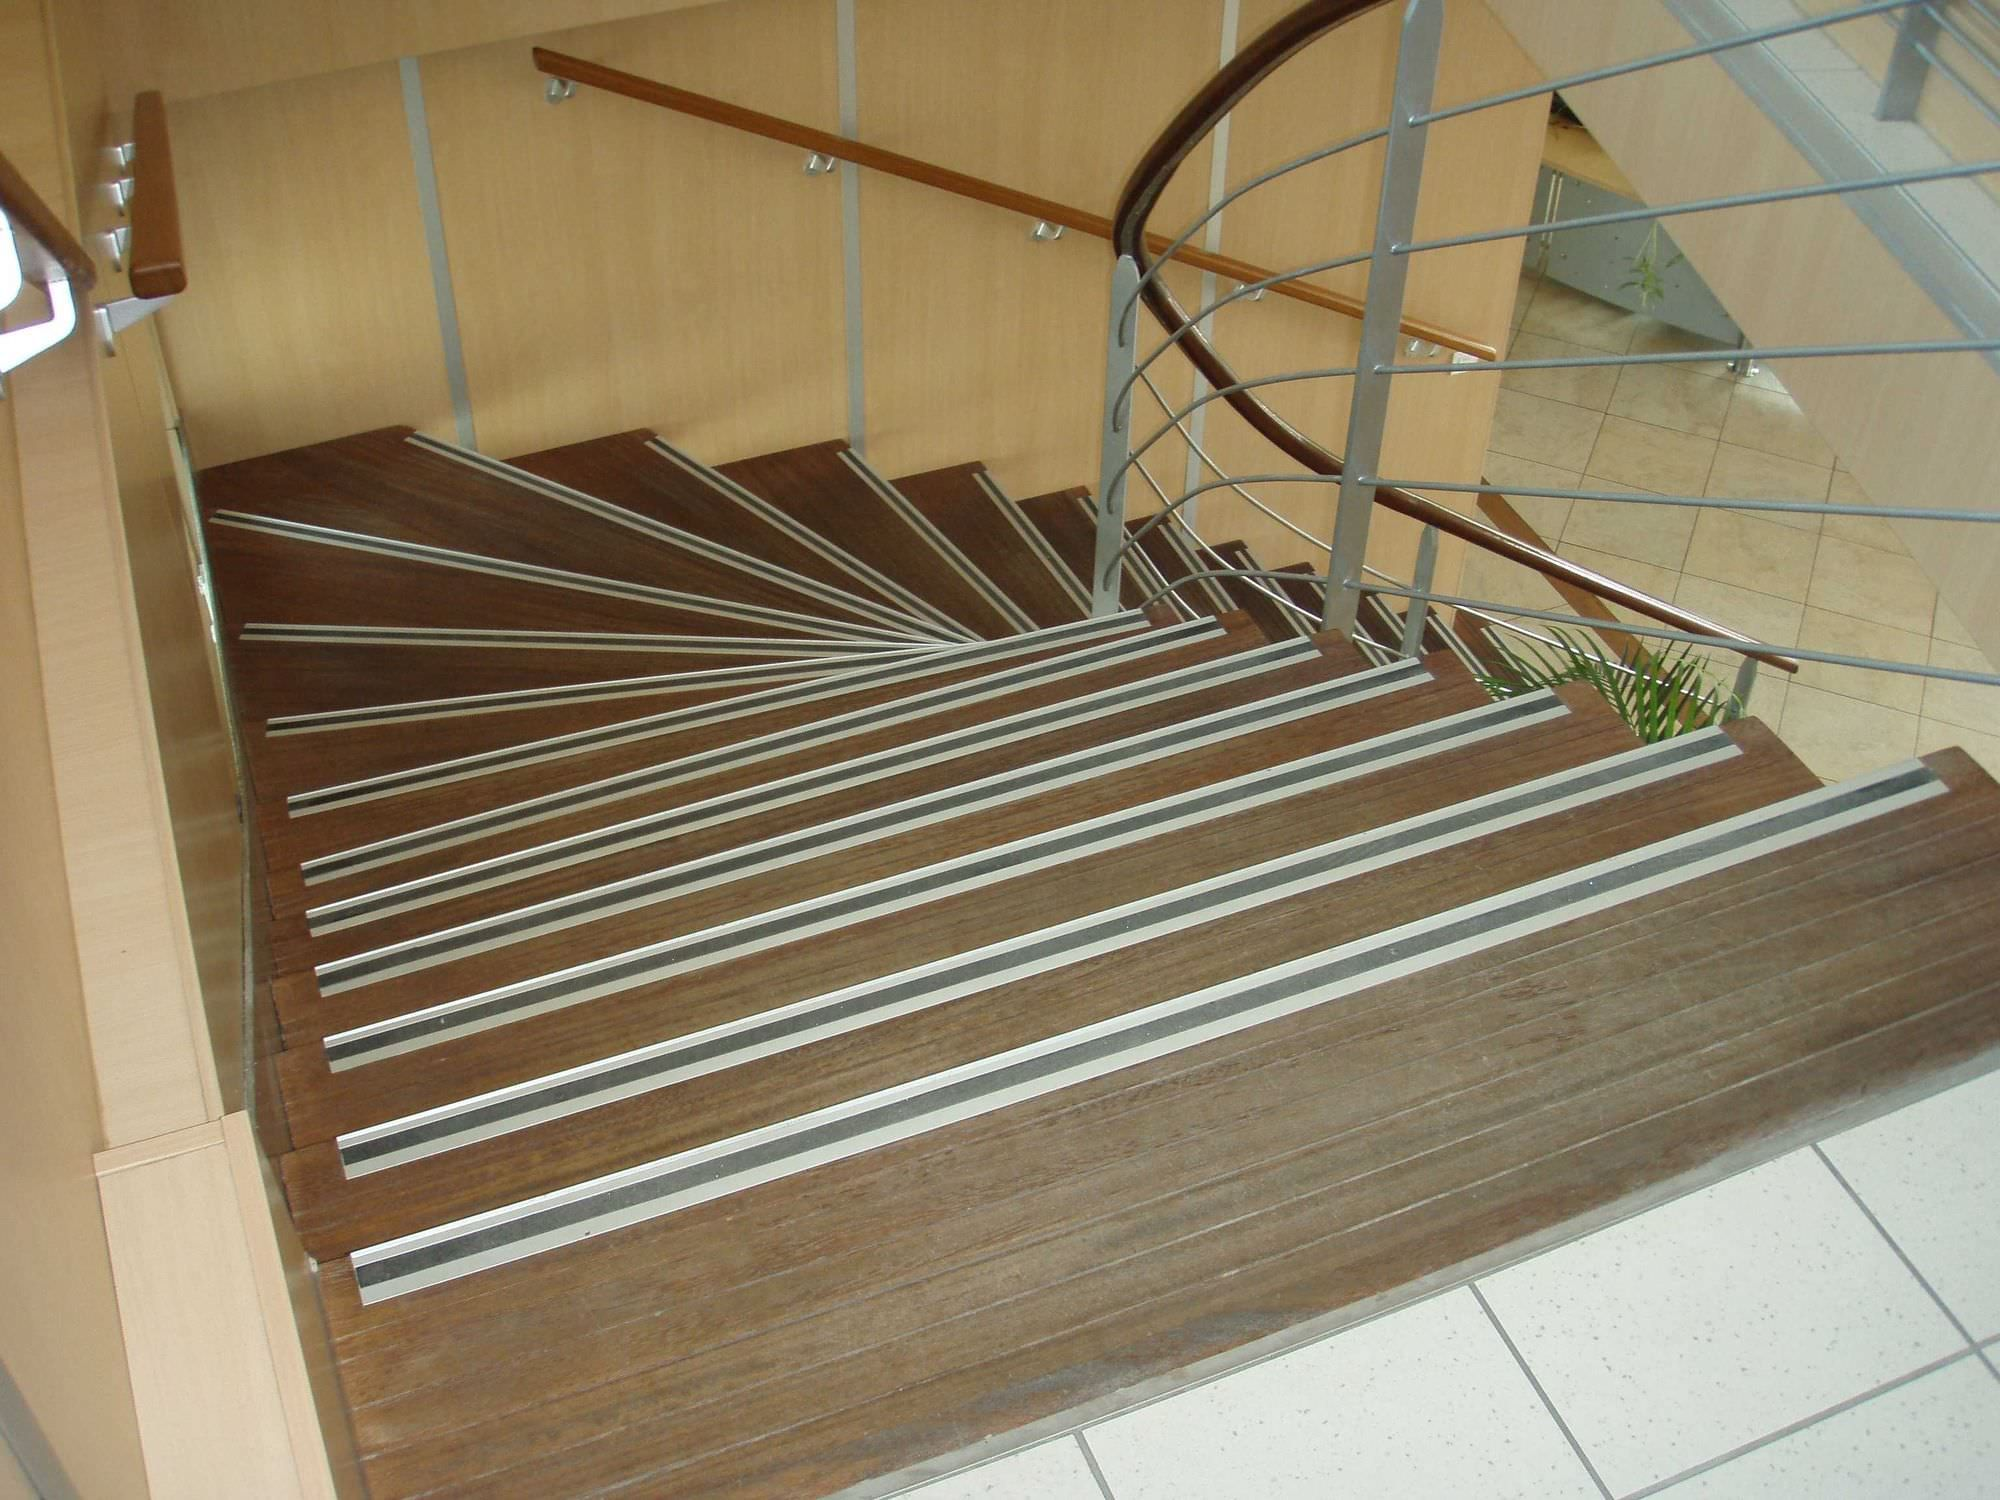 Best Non Slip Stair Nosing L29 Tbs Passage Tbs Timber Stair Home Stairs Design Stair Nosing 400 x 300